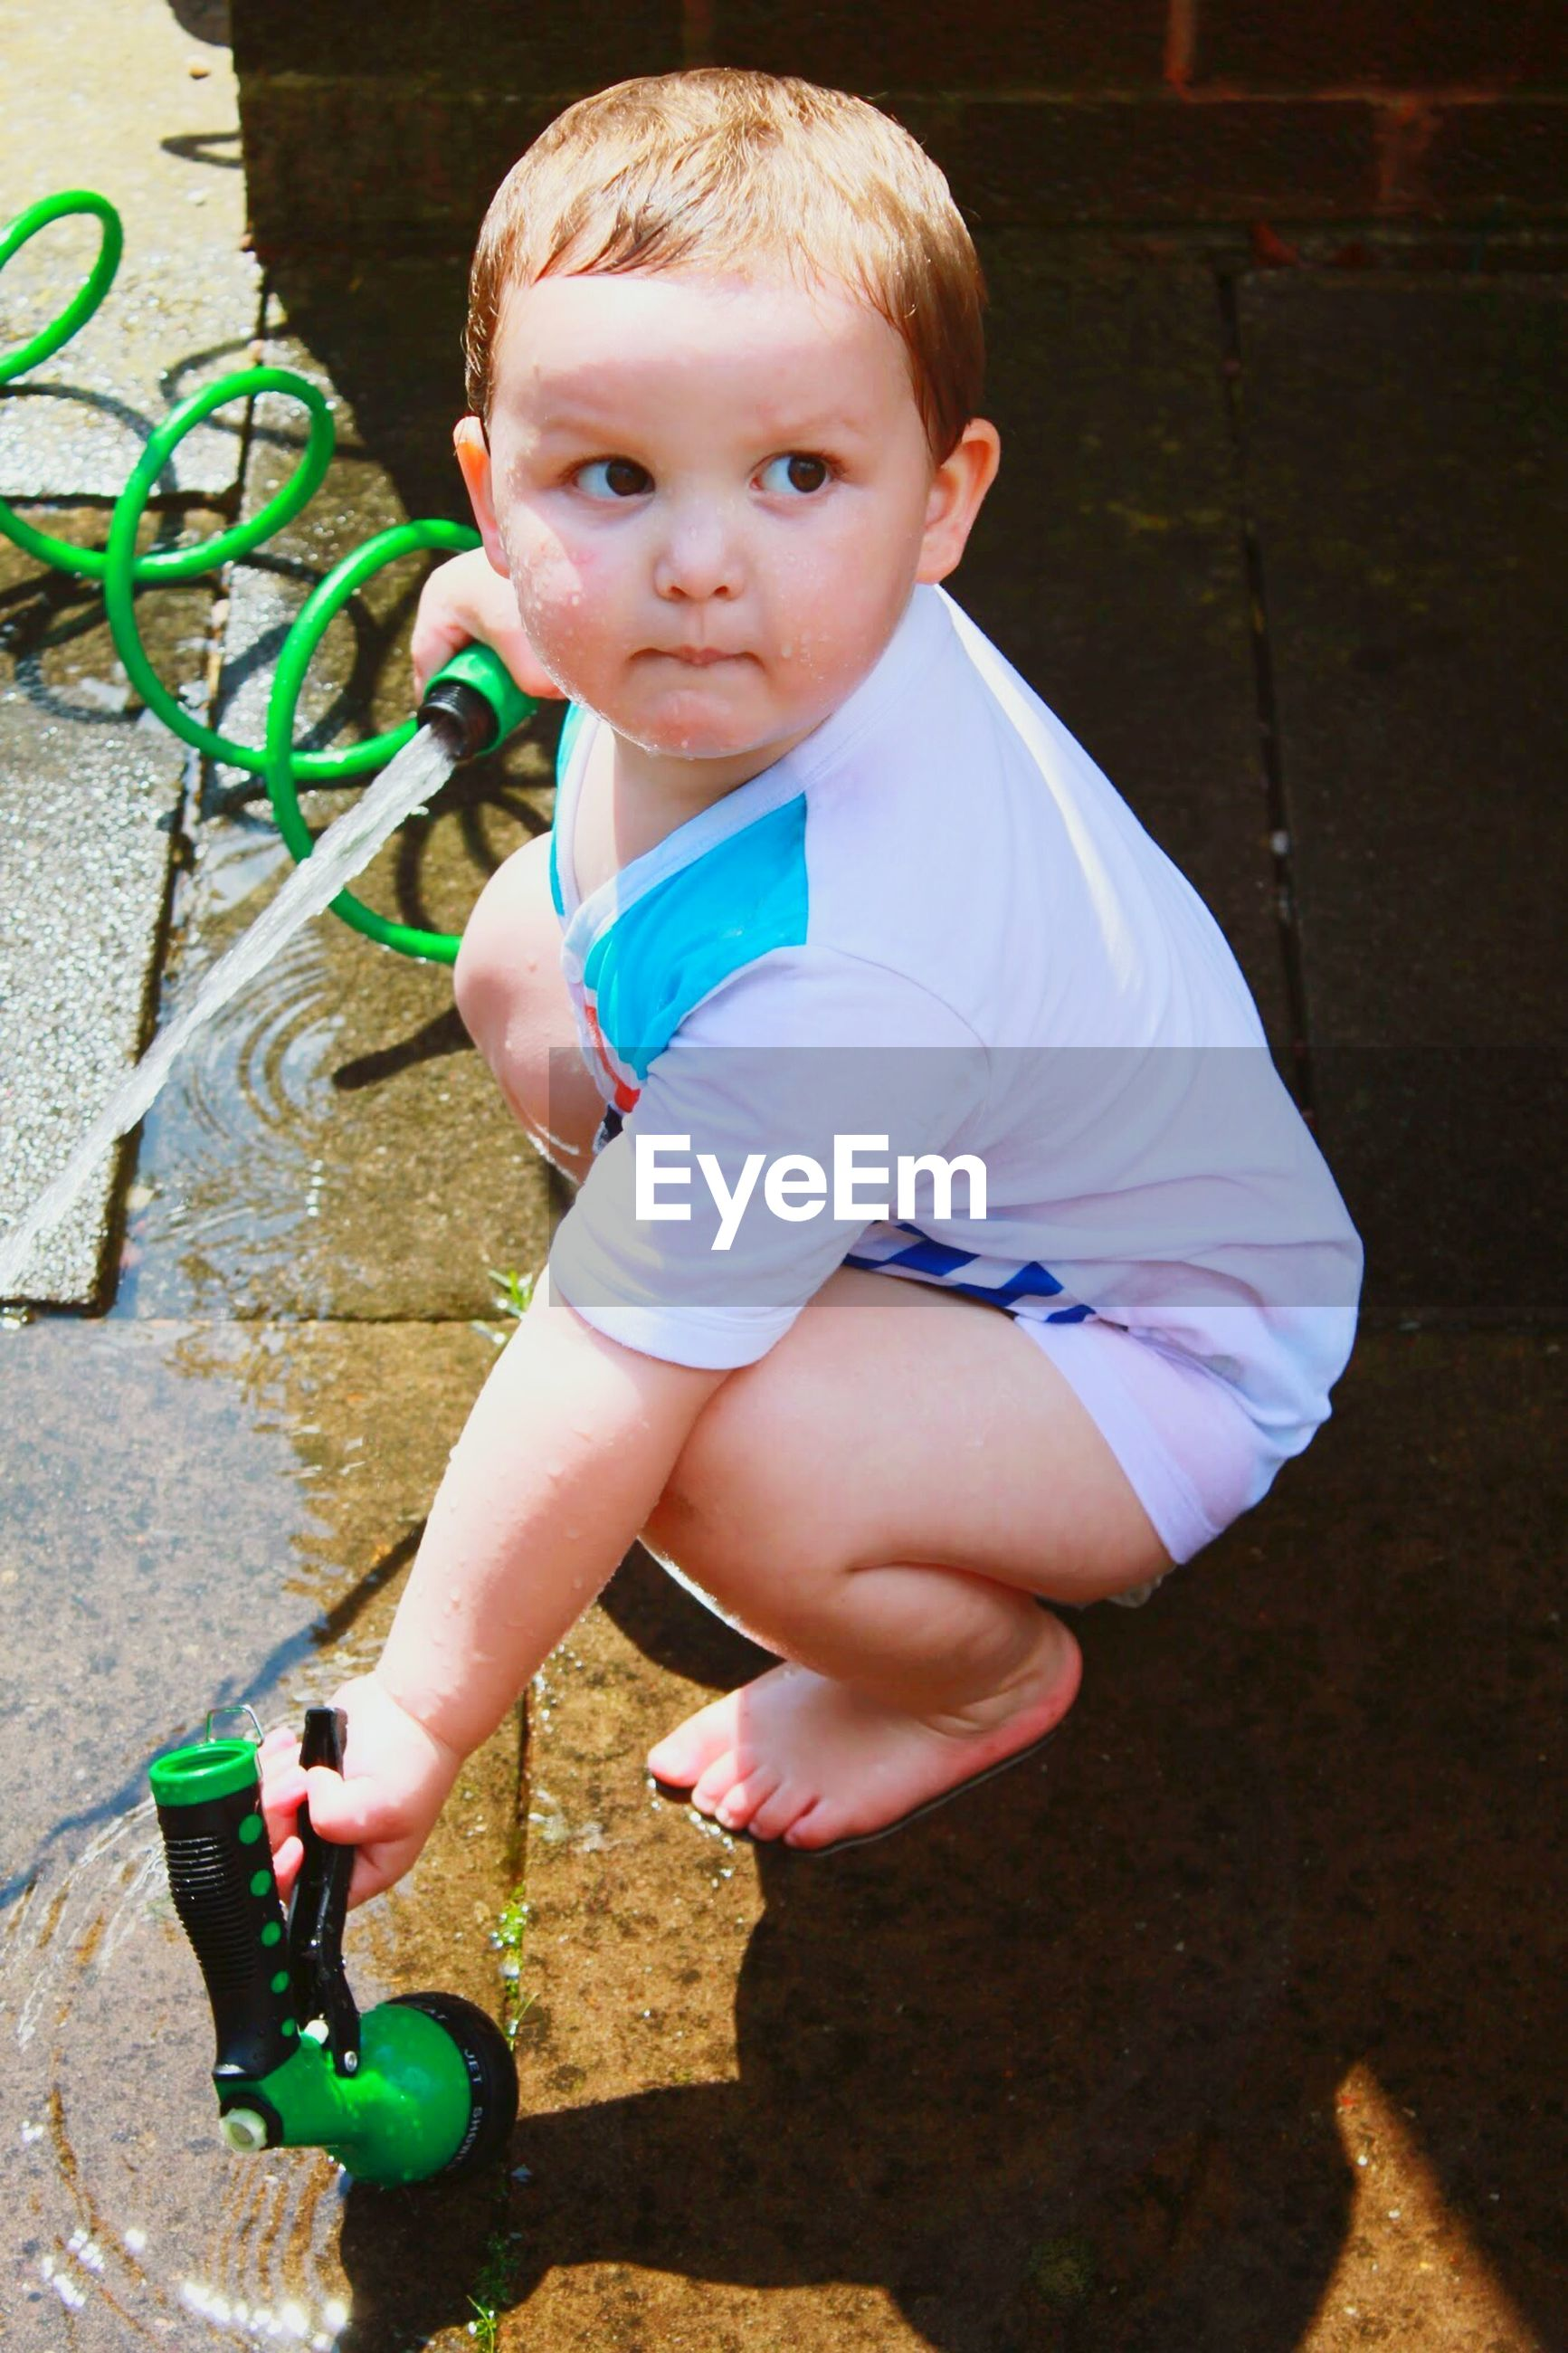 childhood, elementary age, innocence, cute, boys, girls, person, full length, high angle view, playful, leisure activity, playing, toy, toddler, lifestyles, casual clothing, preschool age, babyhood